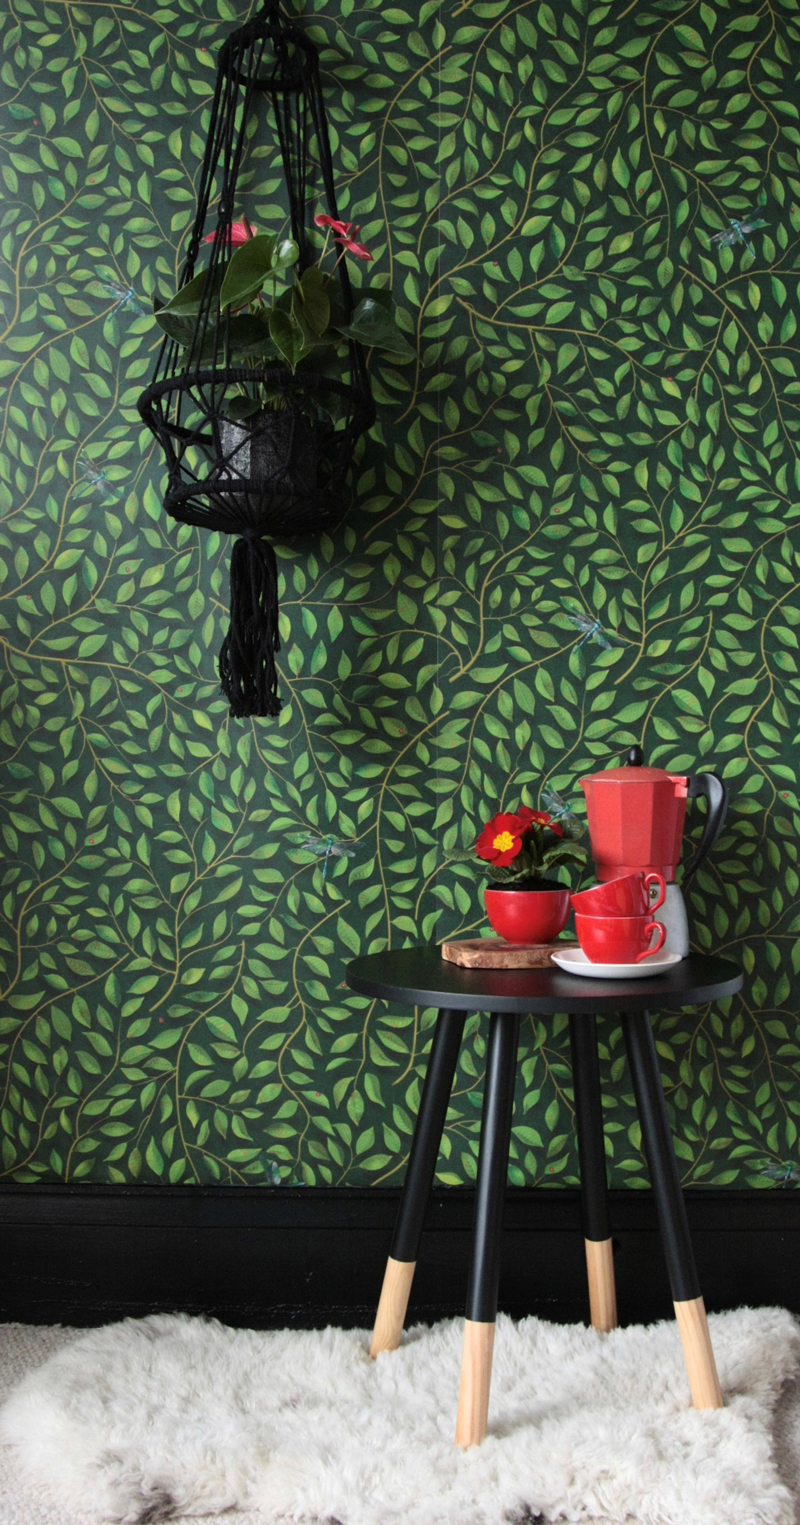 Green floral wallpaper with black table